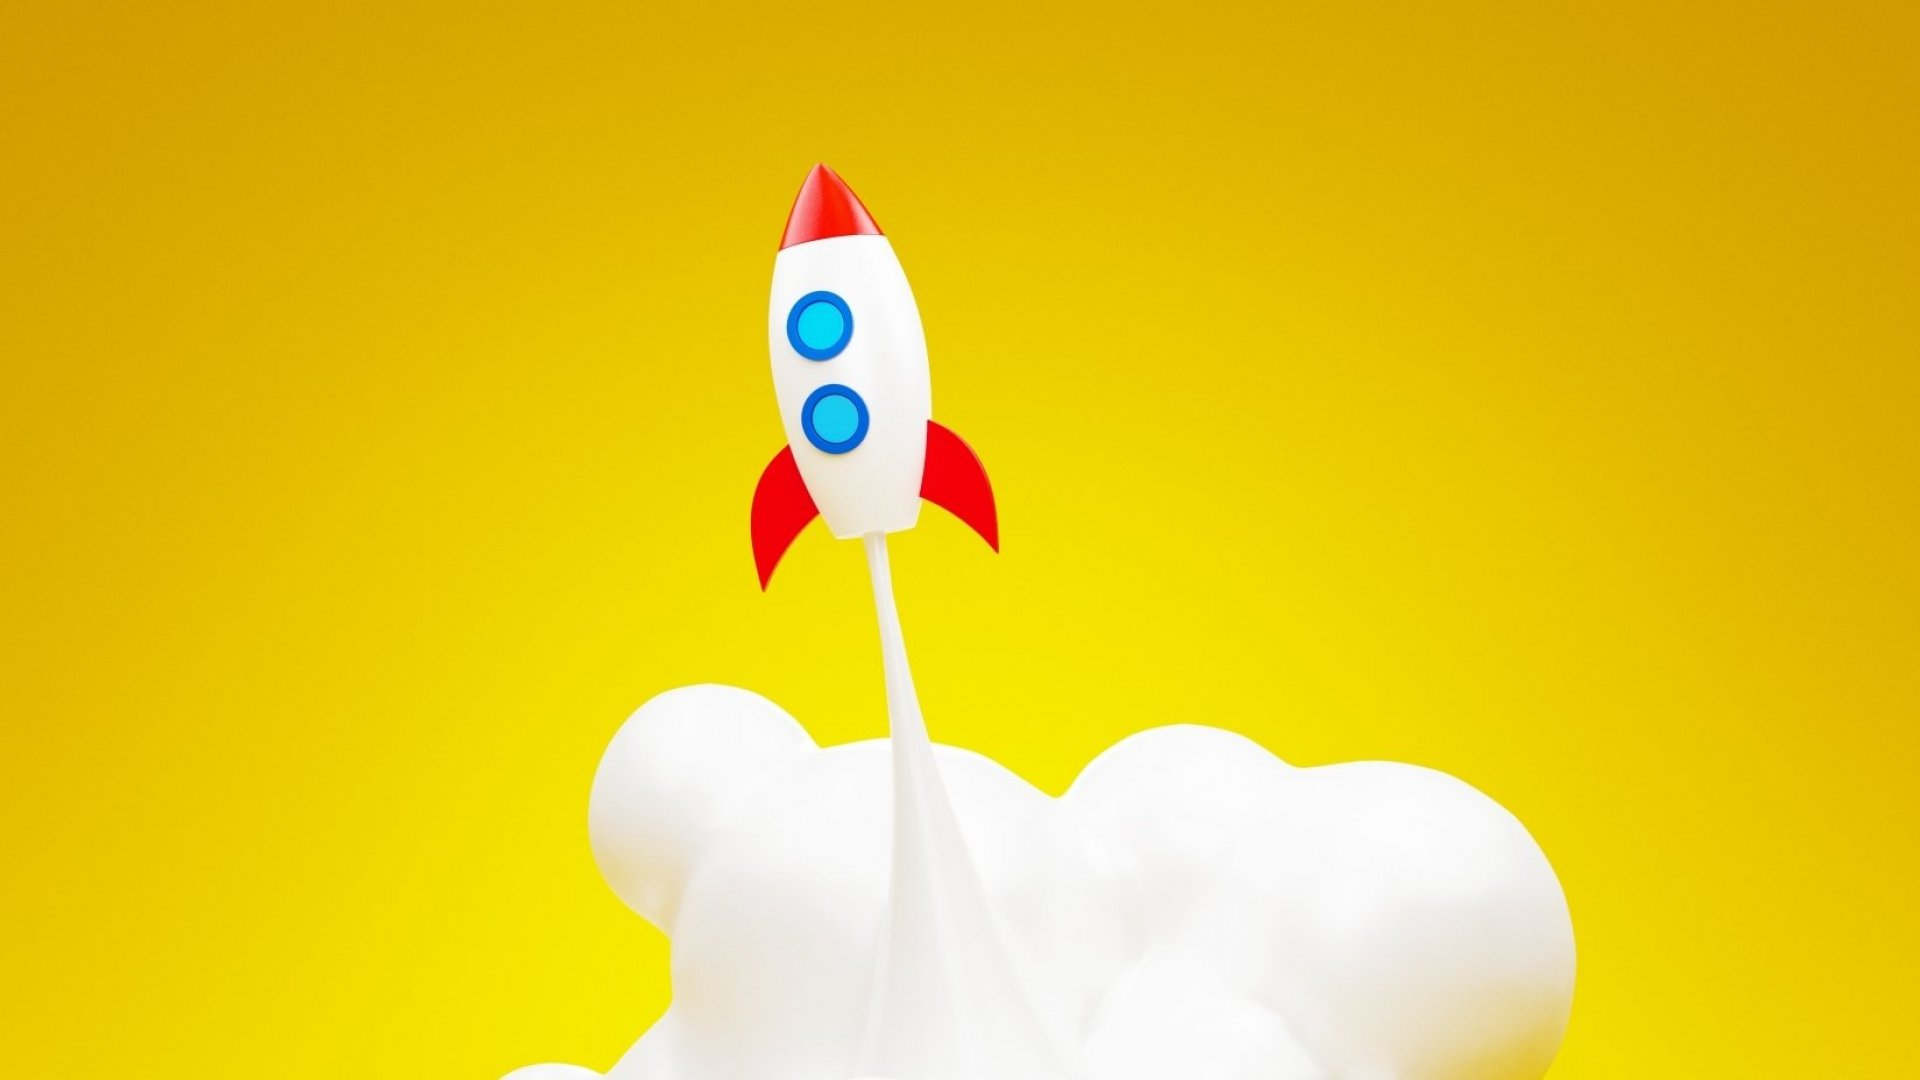 3 Big Questions to Ask Before Applying to an Accelerator